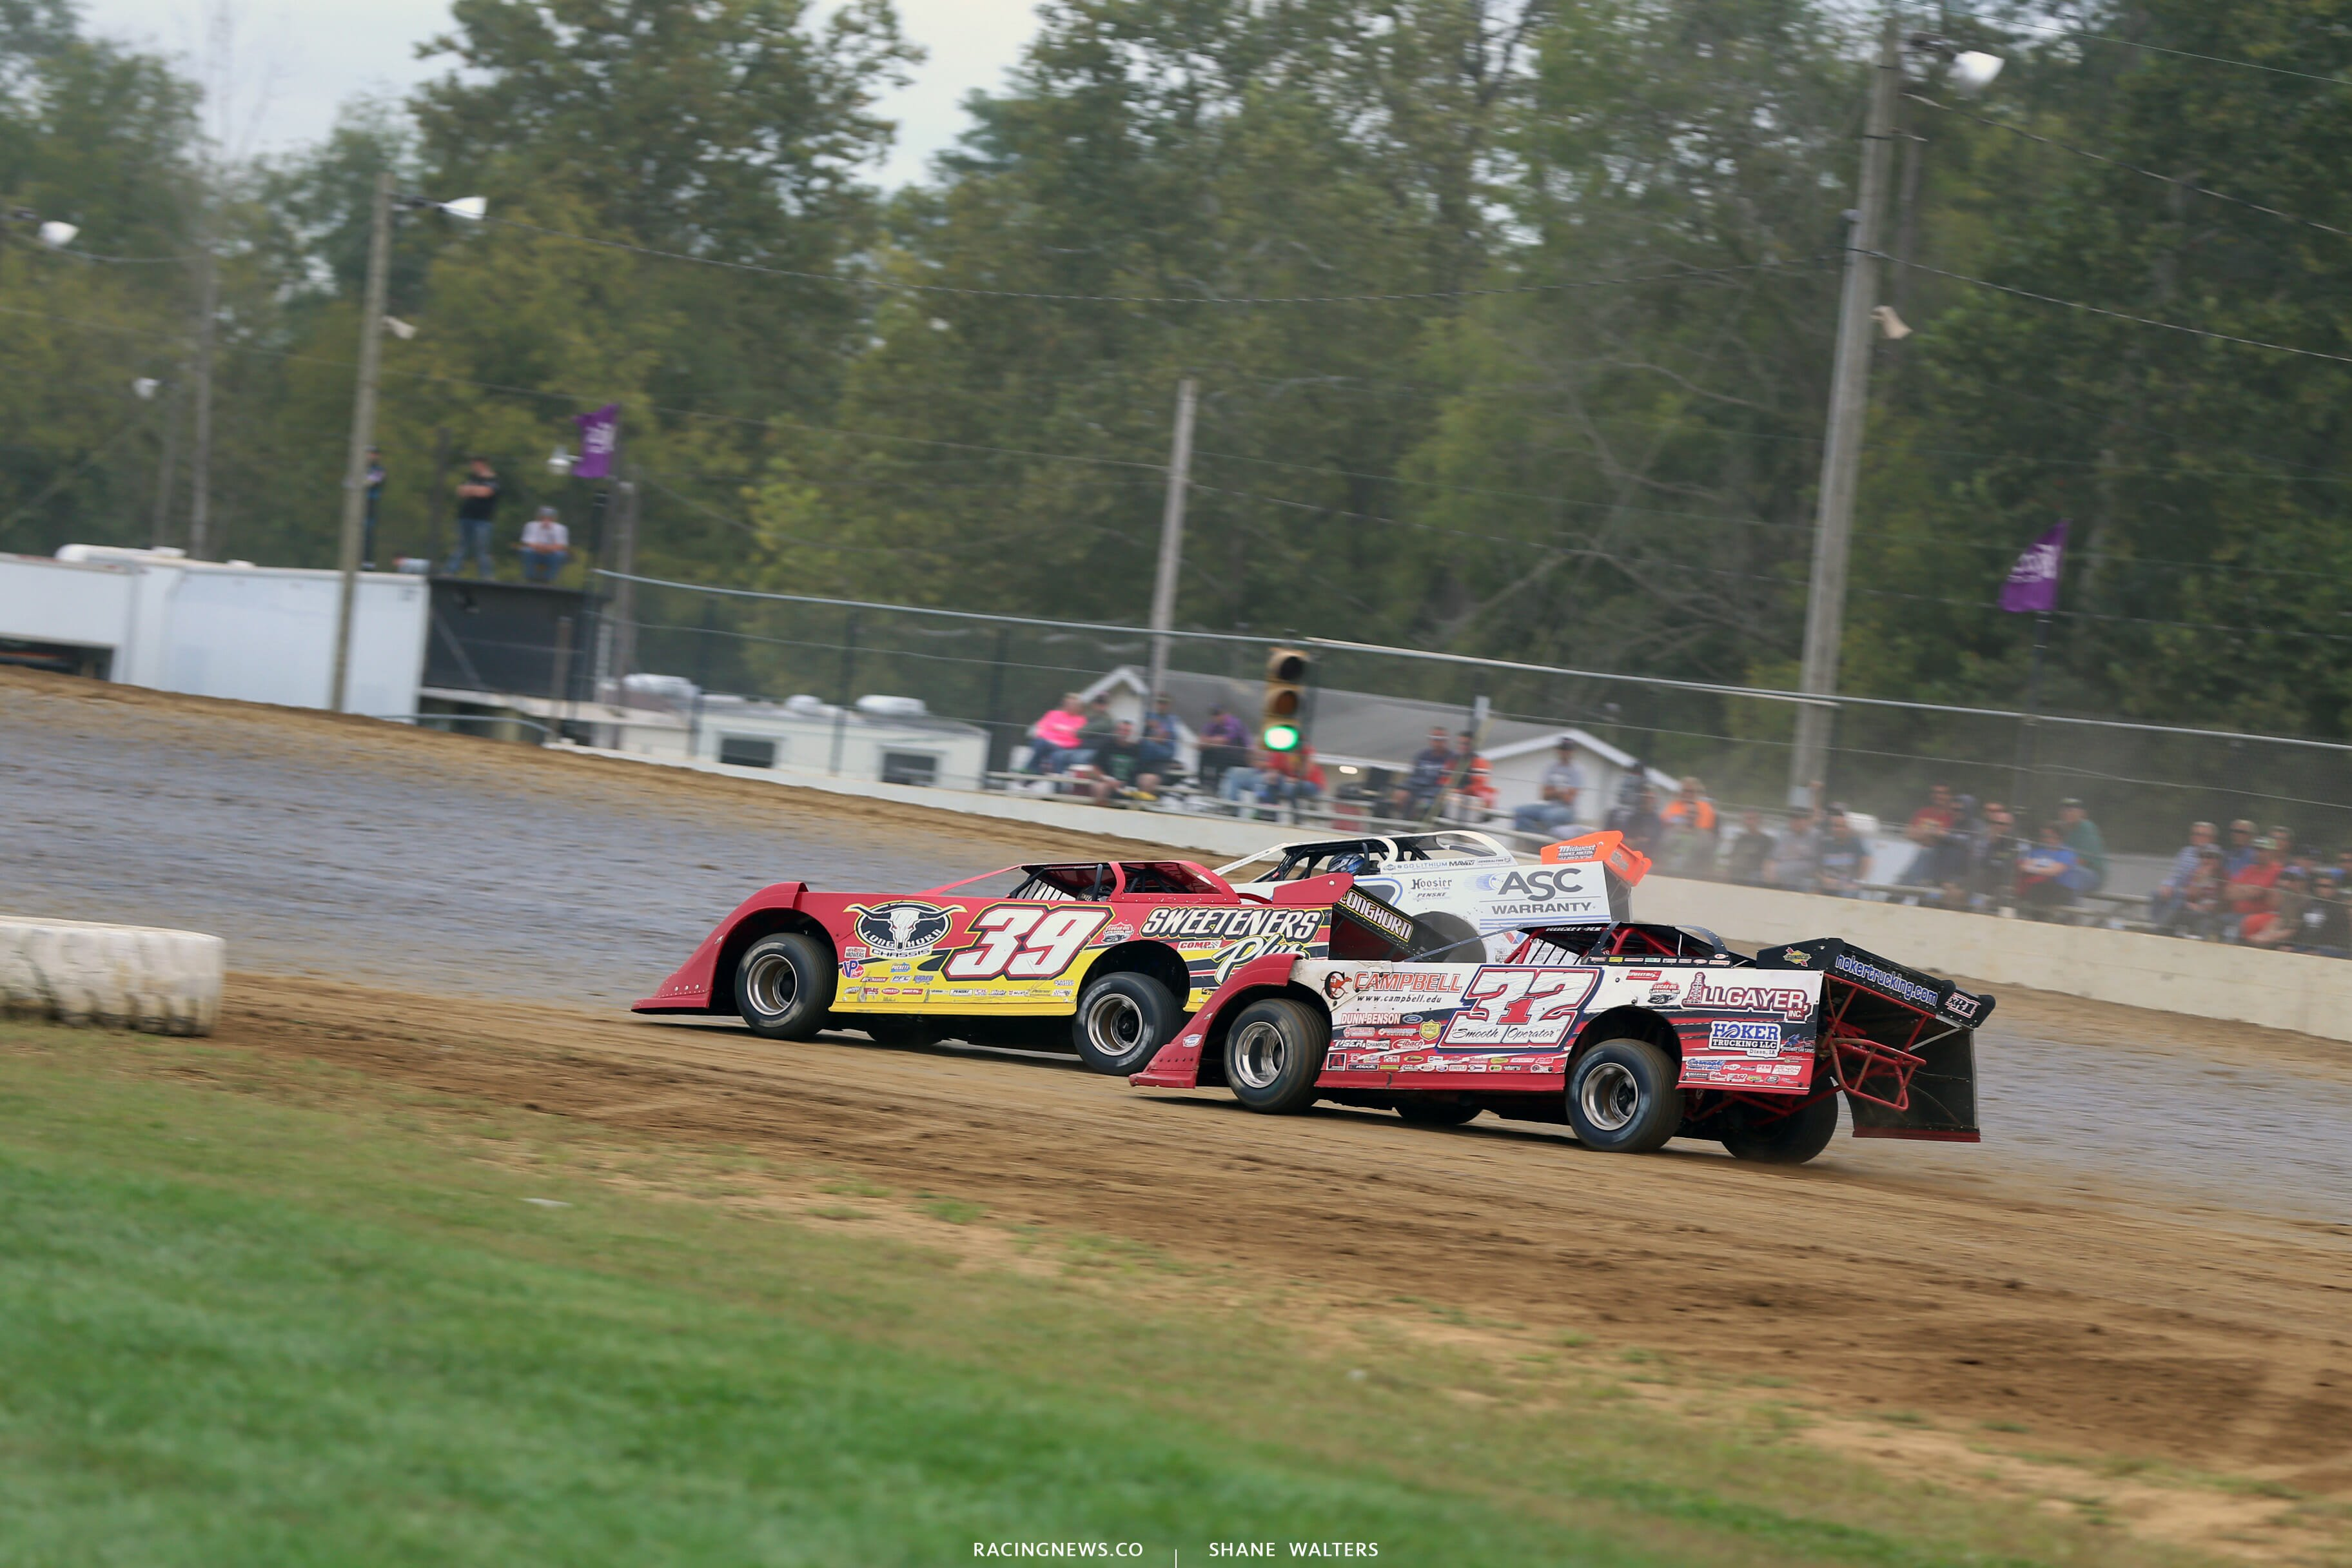 Tim McCreadie, Jonathan Davenport and Bobby Pierce at Brownstown Speedway in the Jackson 100 0350